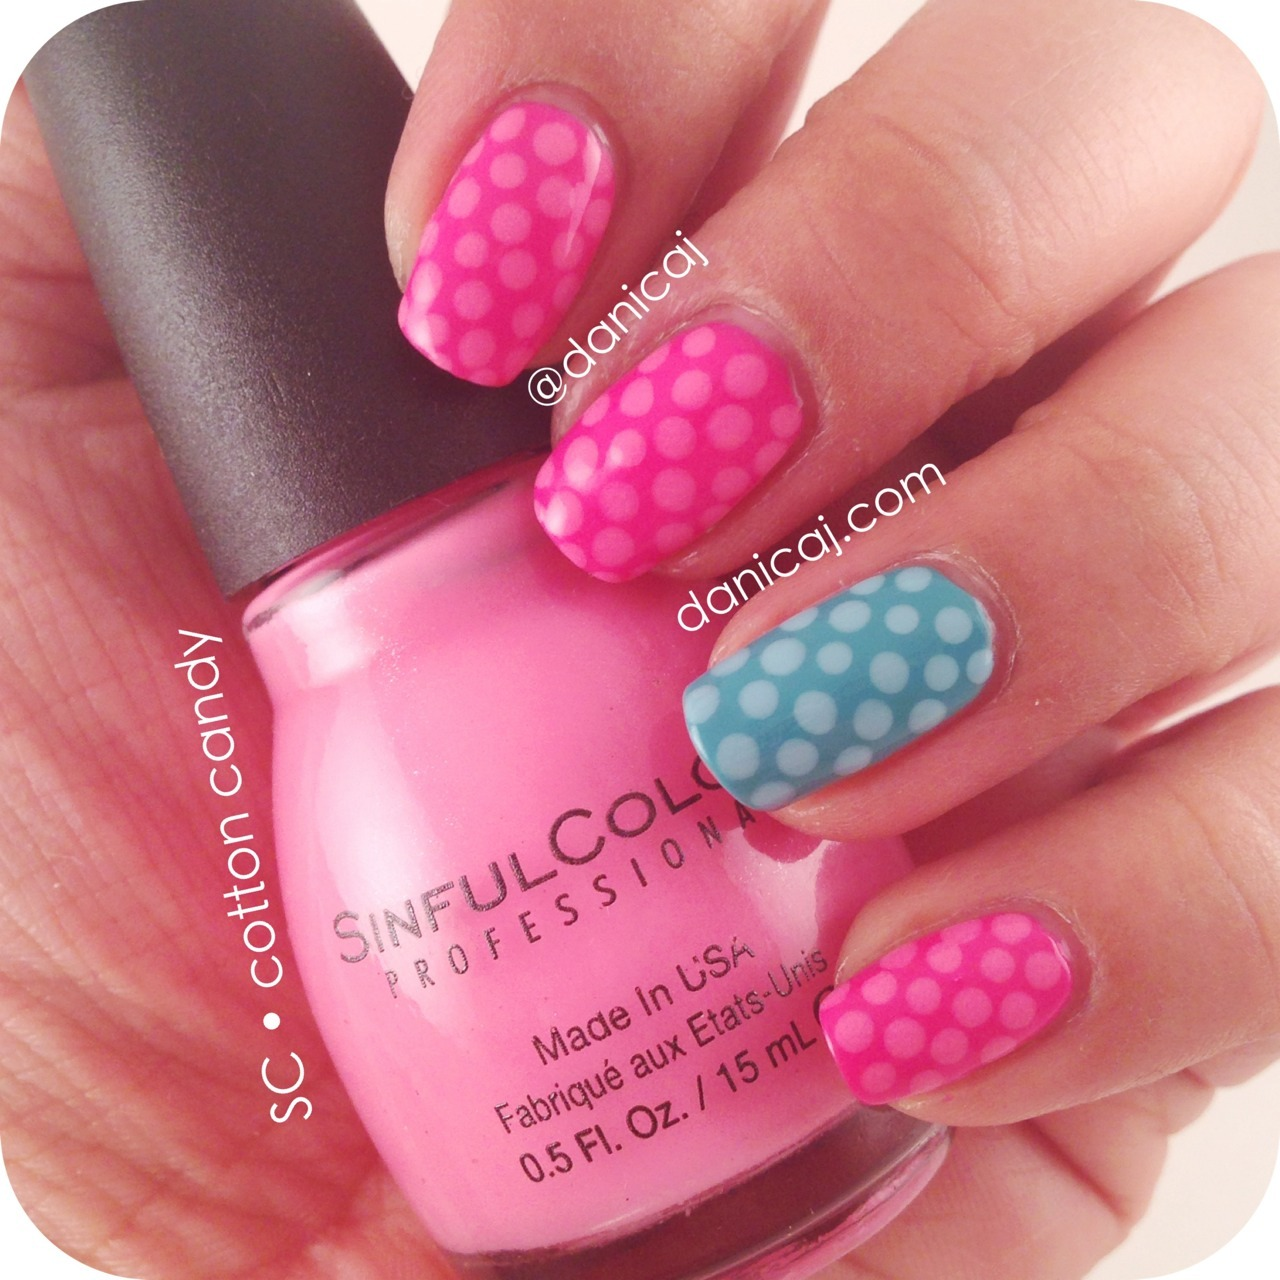 Sinful Colors' Candy Rush collection is fan-freakin-tastic! Super simple polka dots are a quick and easy fix for one-polish manis!